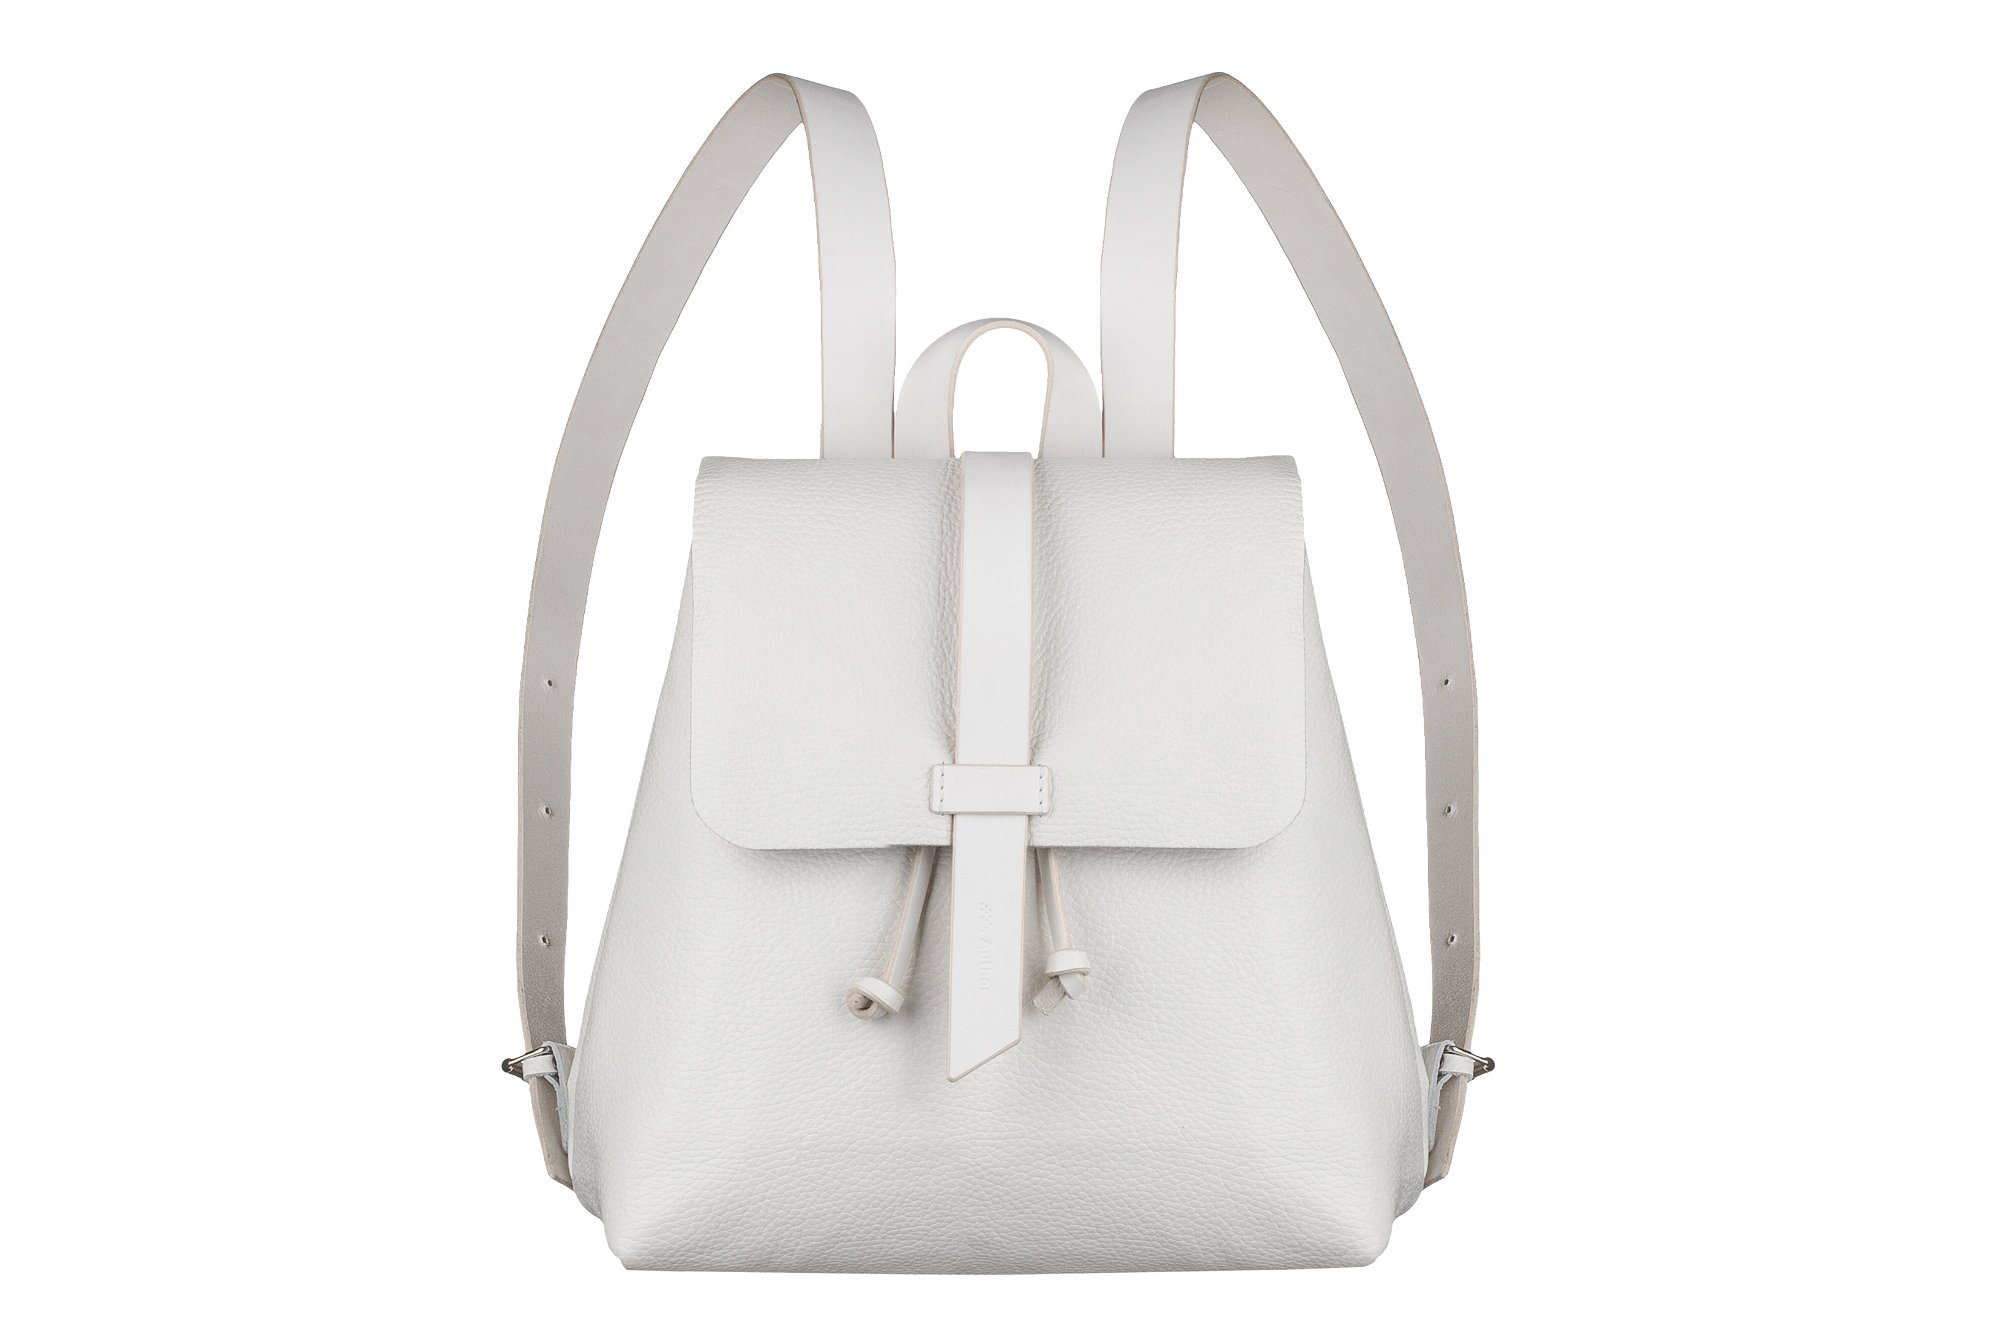 Leather White backpack, leather mini backpack, Leather Tote bag, women bag, woman small backpack, handmade backpack, women white backpack, school backpack